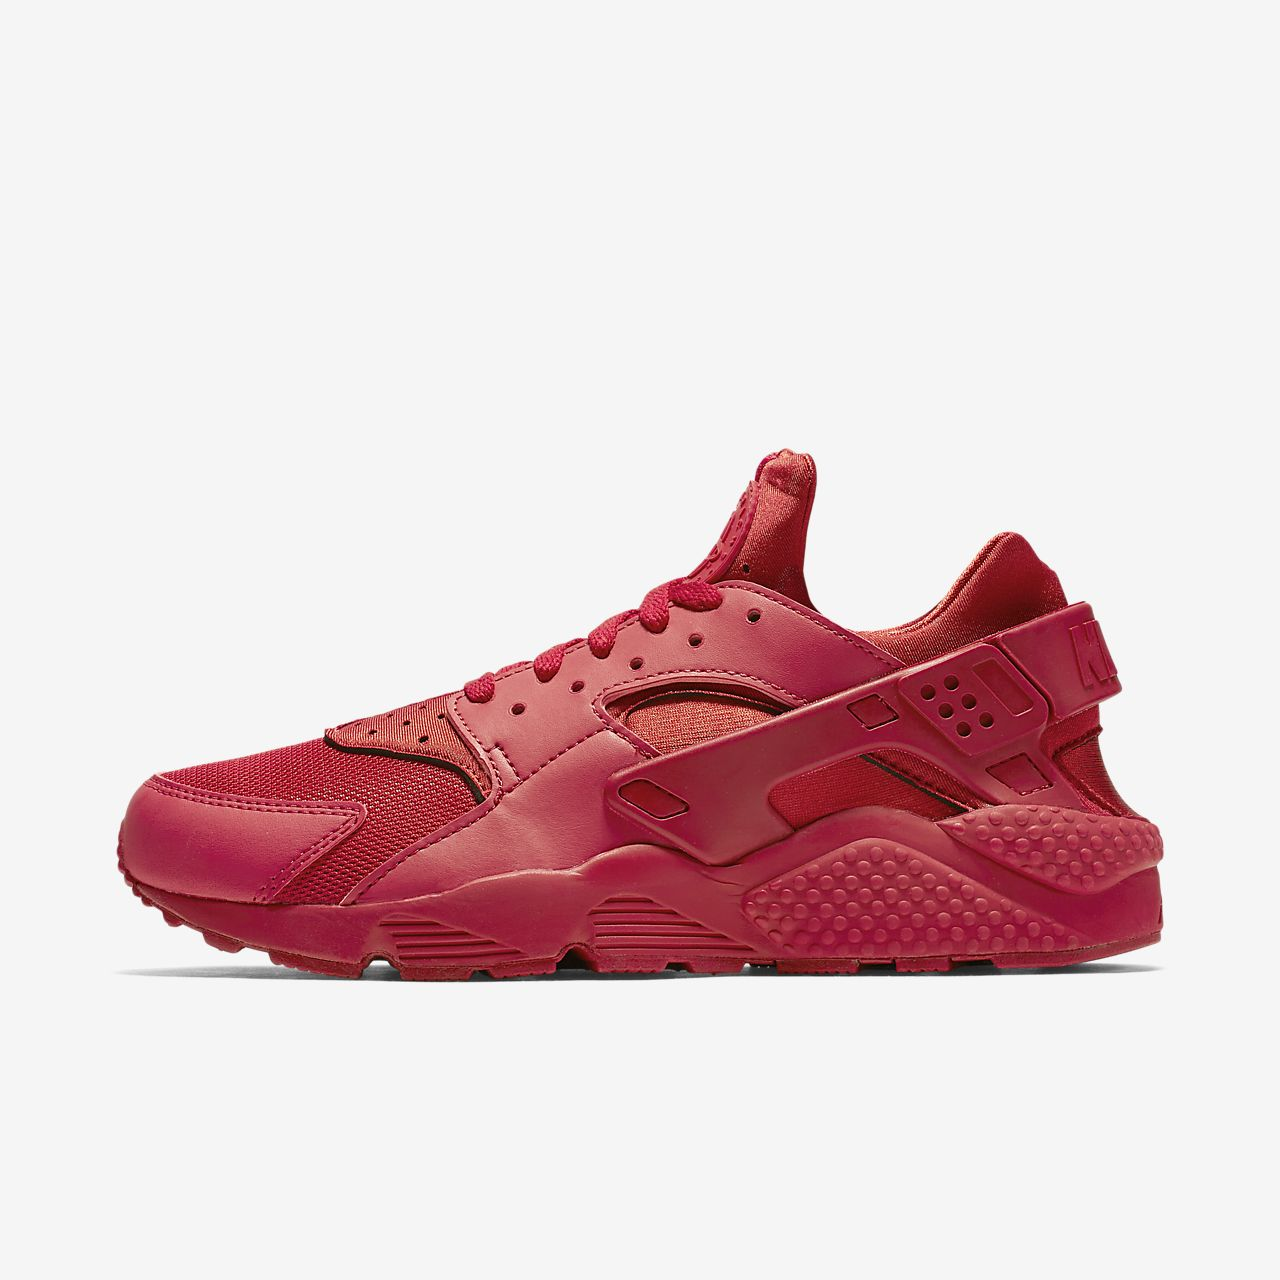 new product 0f4f4 39fe7 ... Nike Air Huarache Men s Shoe